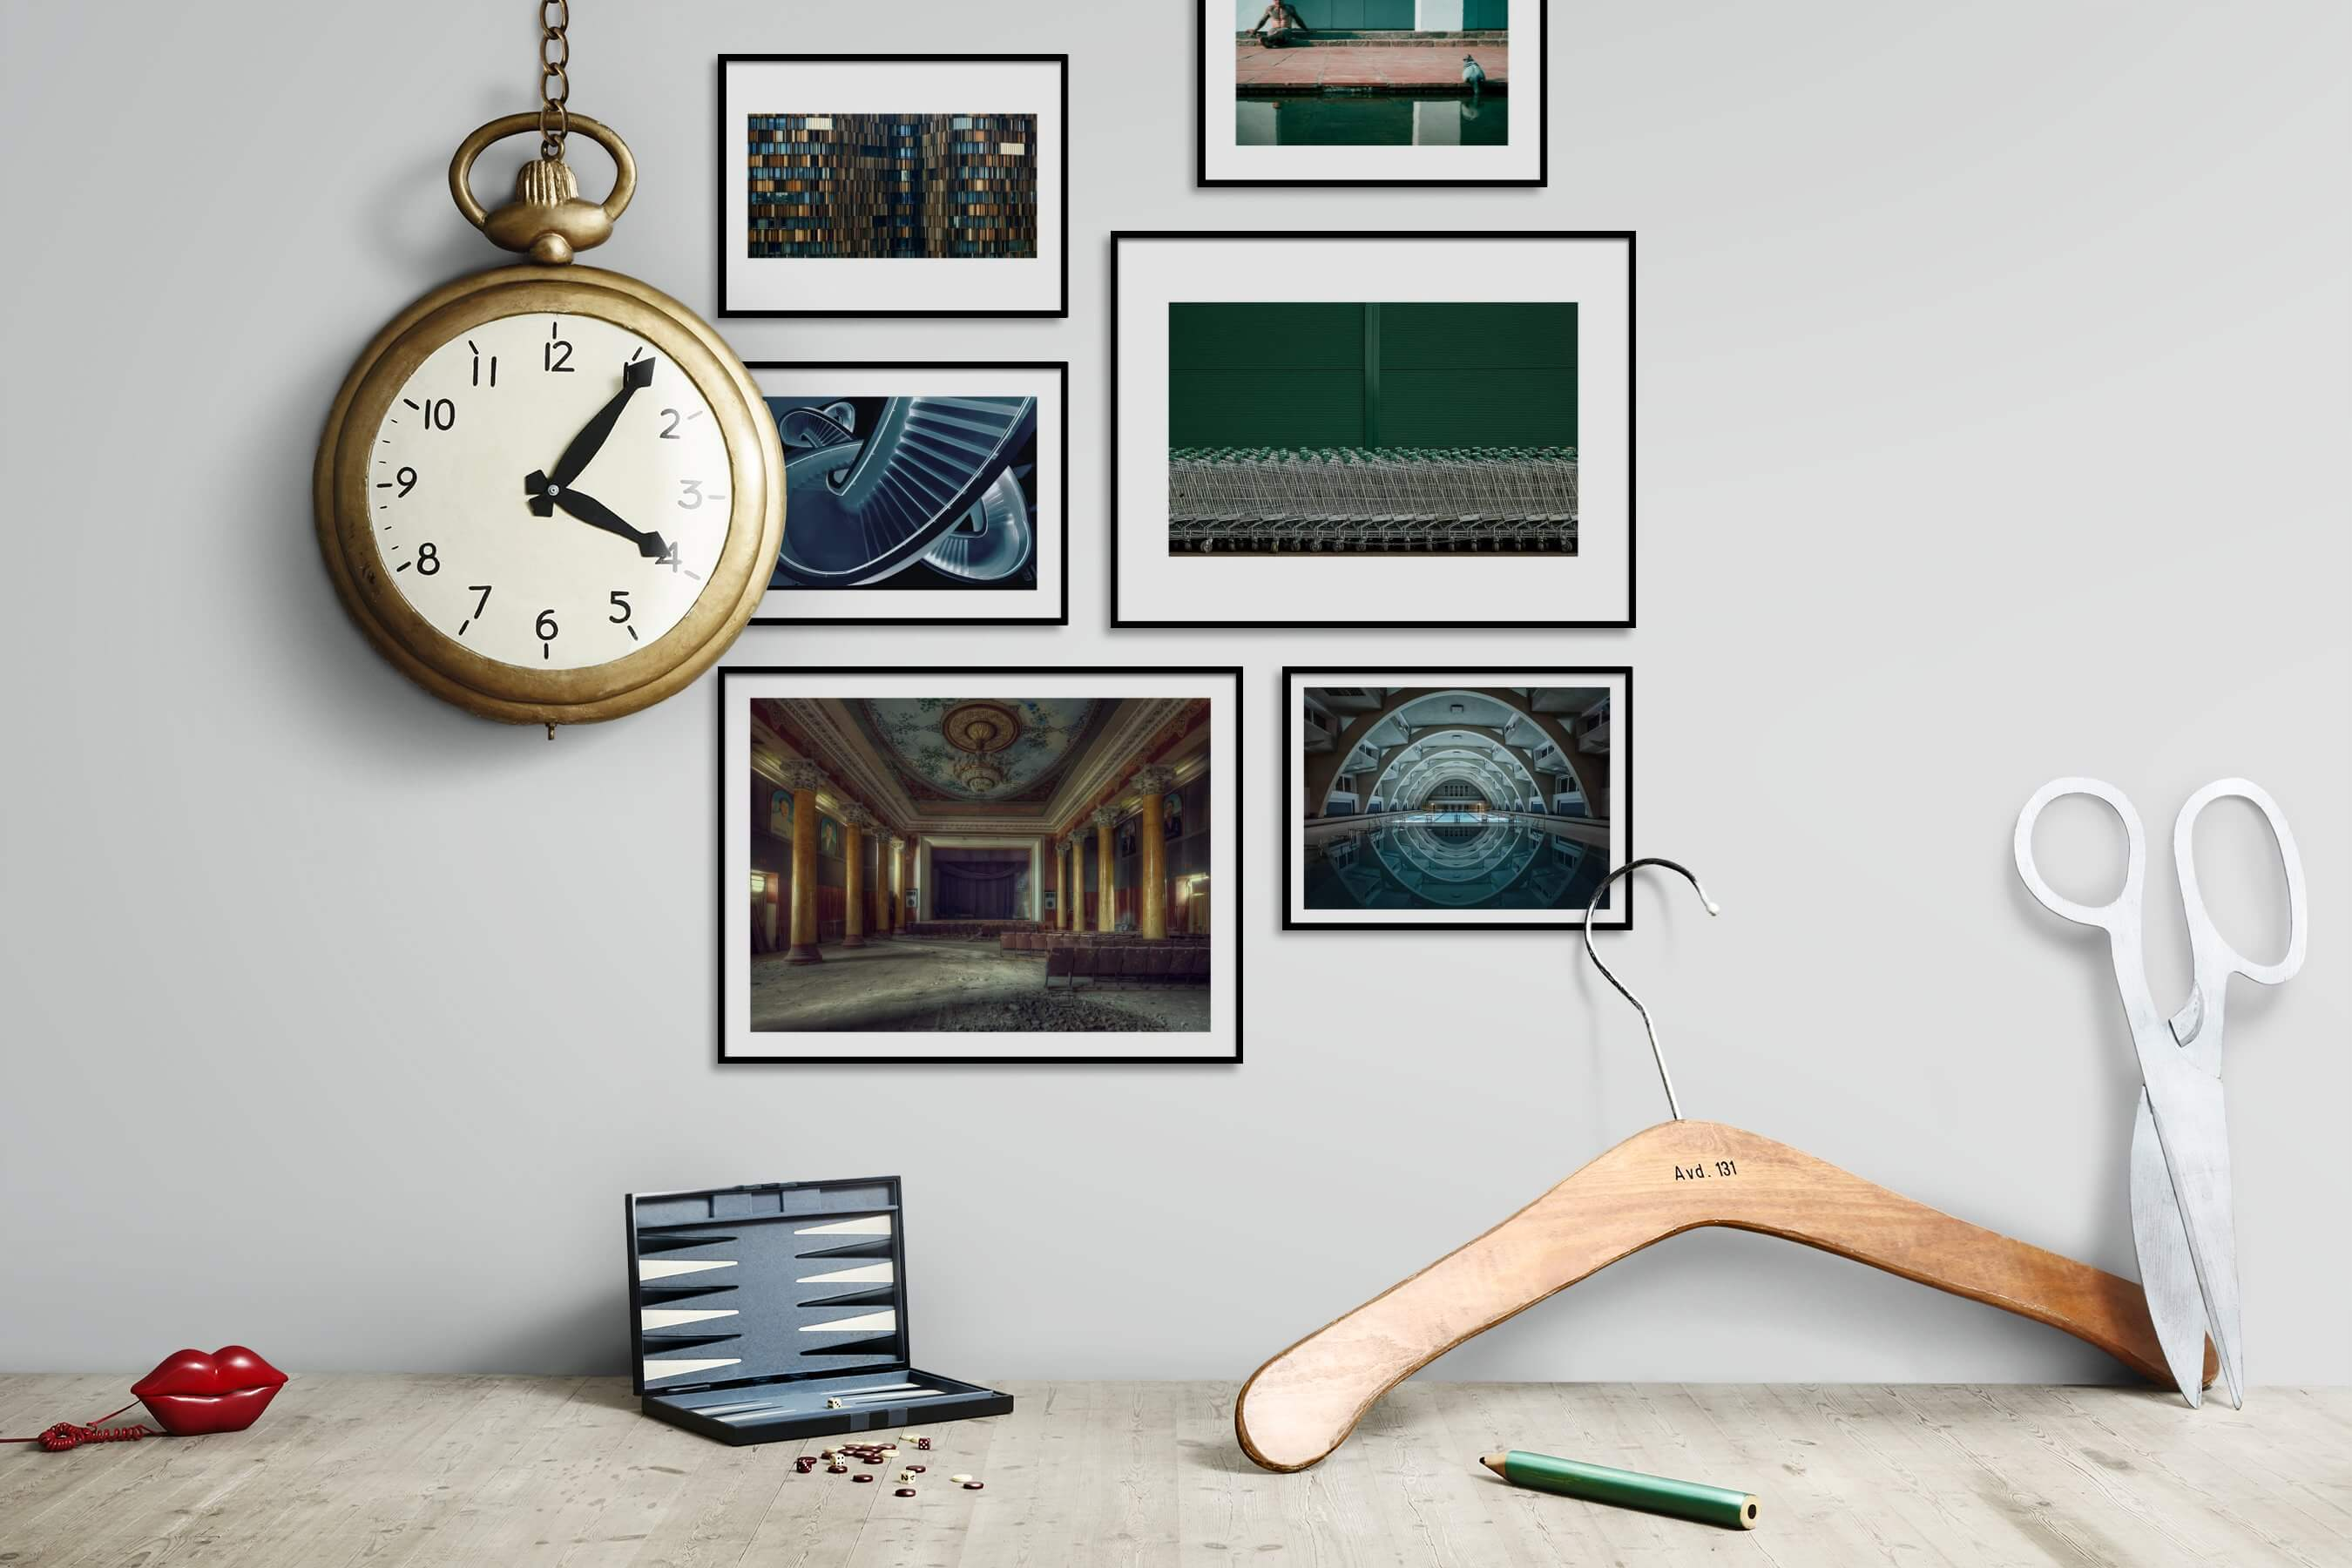 Gallery wall idea with six framed pictures arranged on a wall depicting For the Moderate, City Life, Vintage, For the Maximalist, and Beach & Water